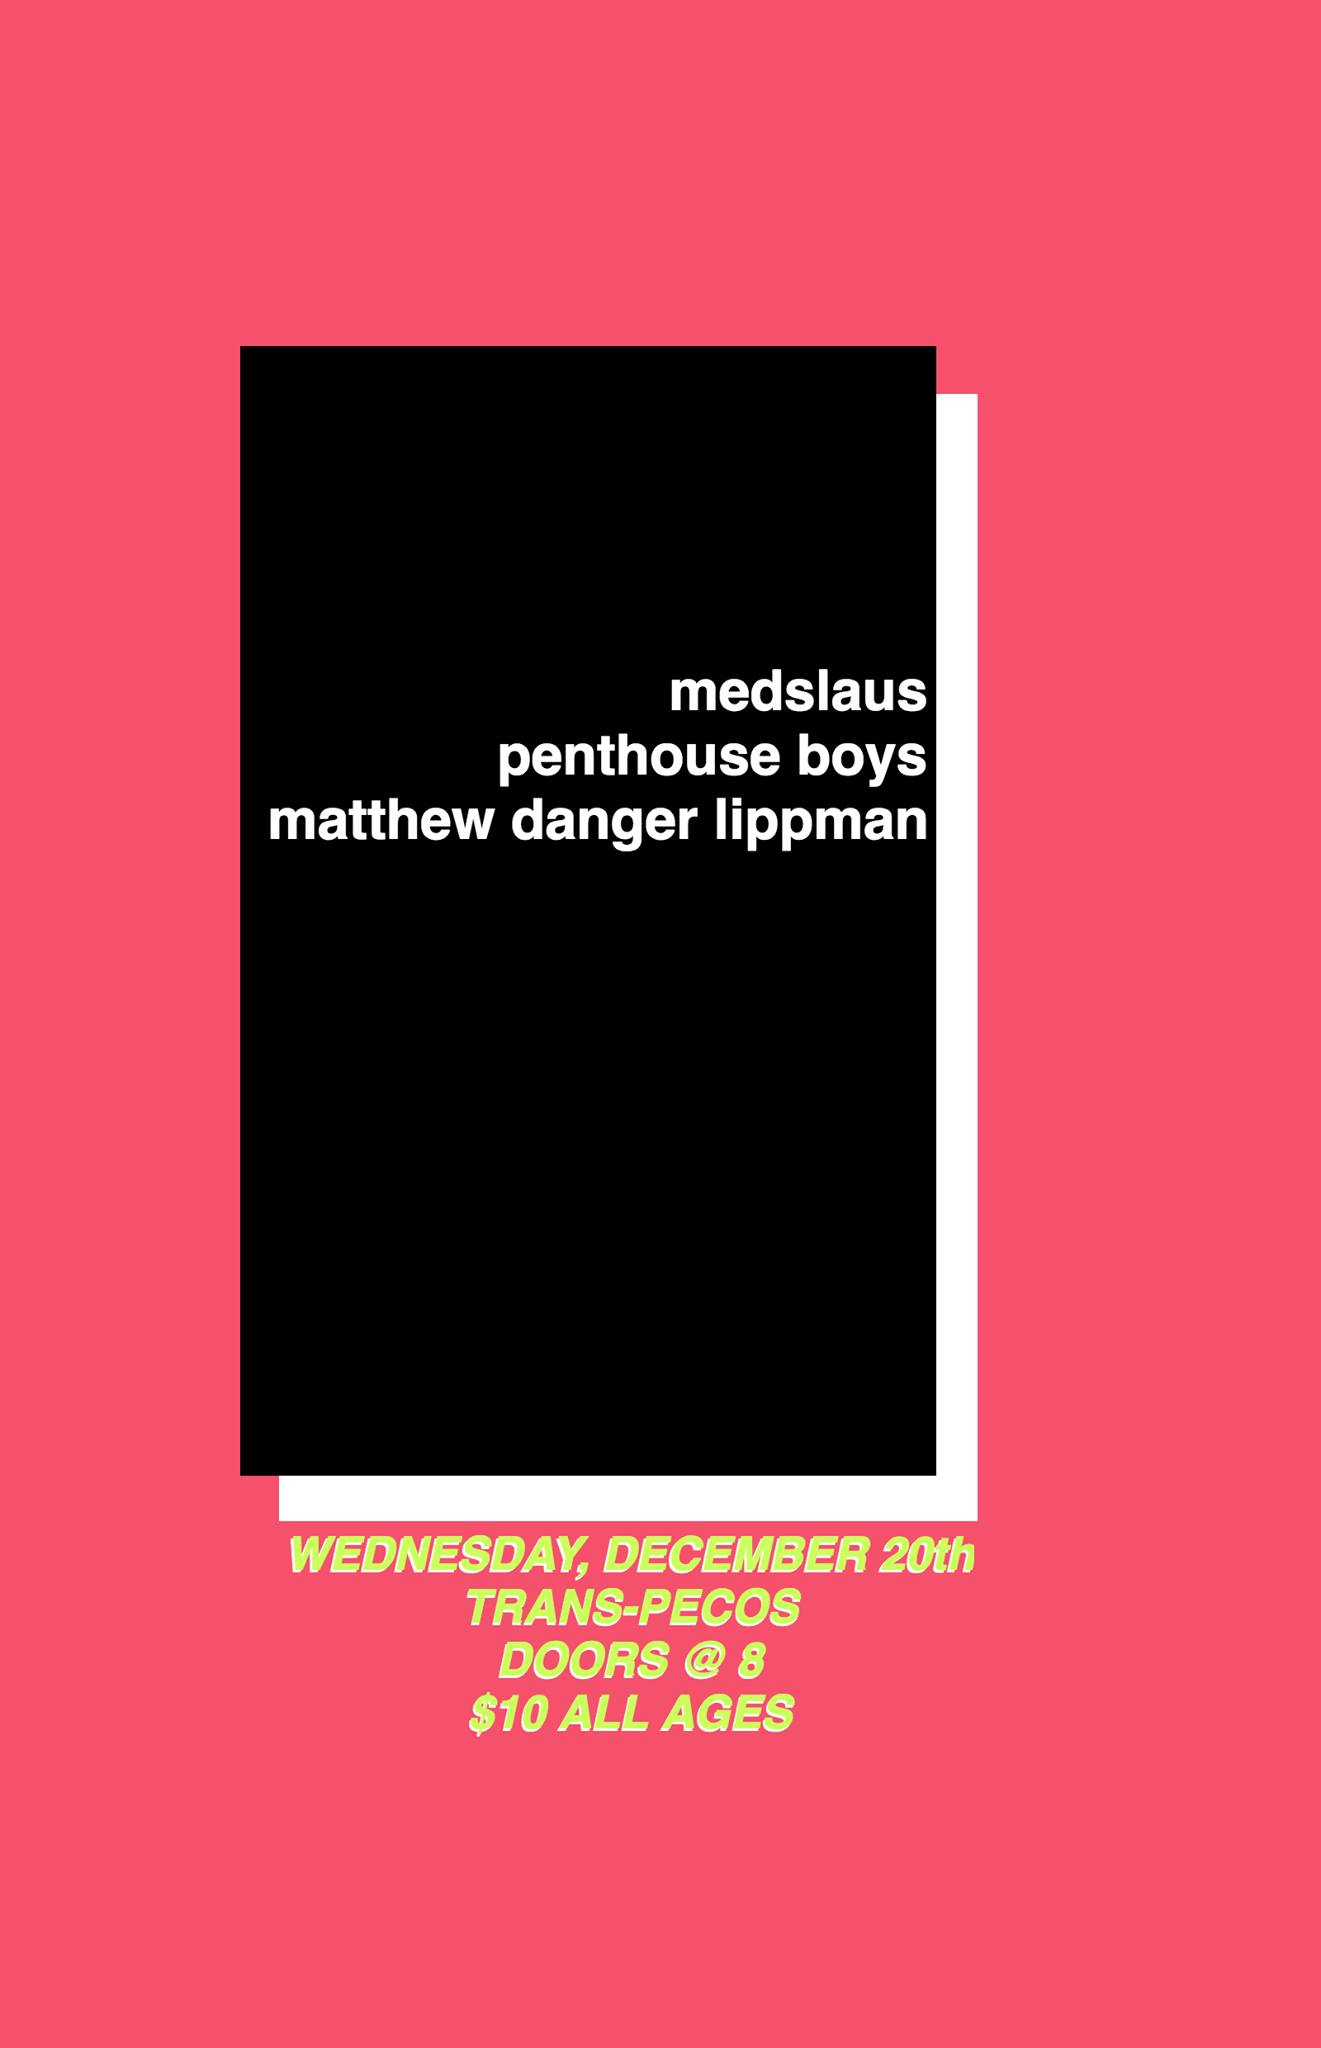 medslaus  https://soundcloud.com/medslaus    Penthouse Boys   https://penthouseboys.bandcamp.com/    Matthew Danger Lippman   https://matthewdangerlippman.bandcamp.com/   Doors at 8 $10 All Ages